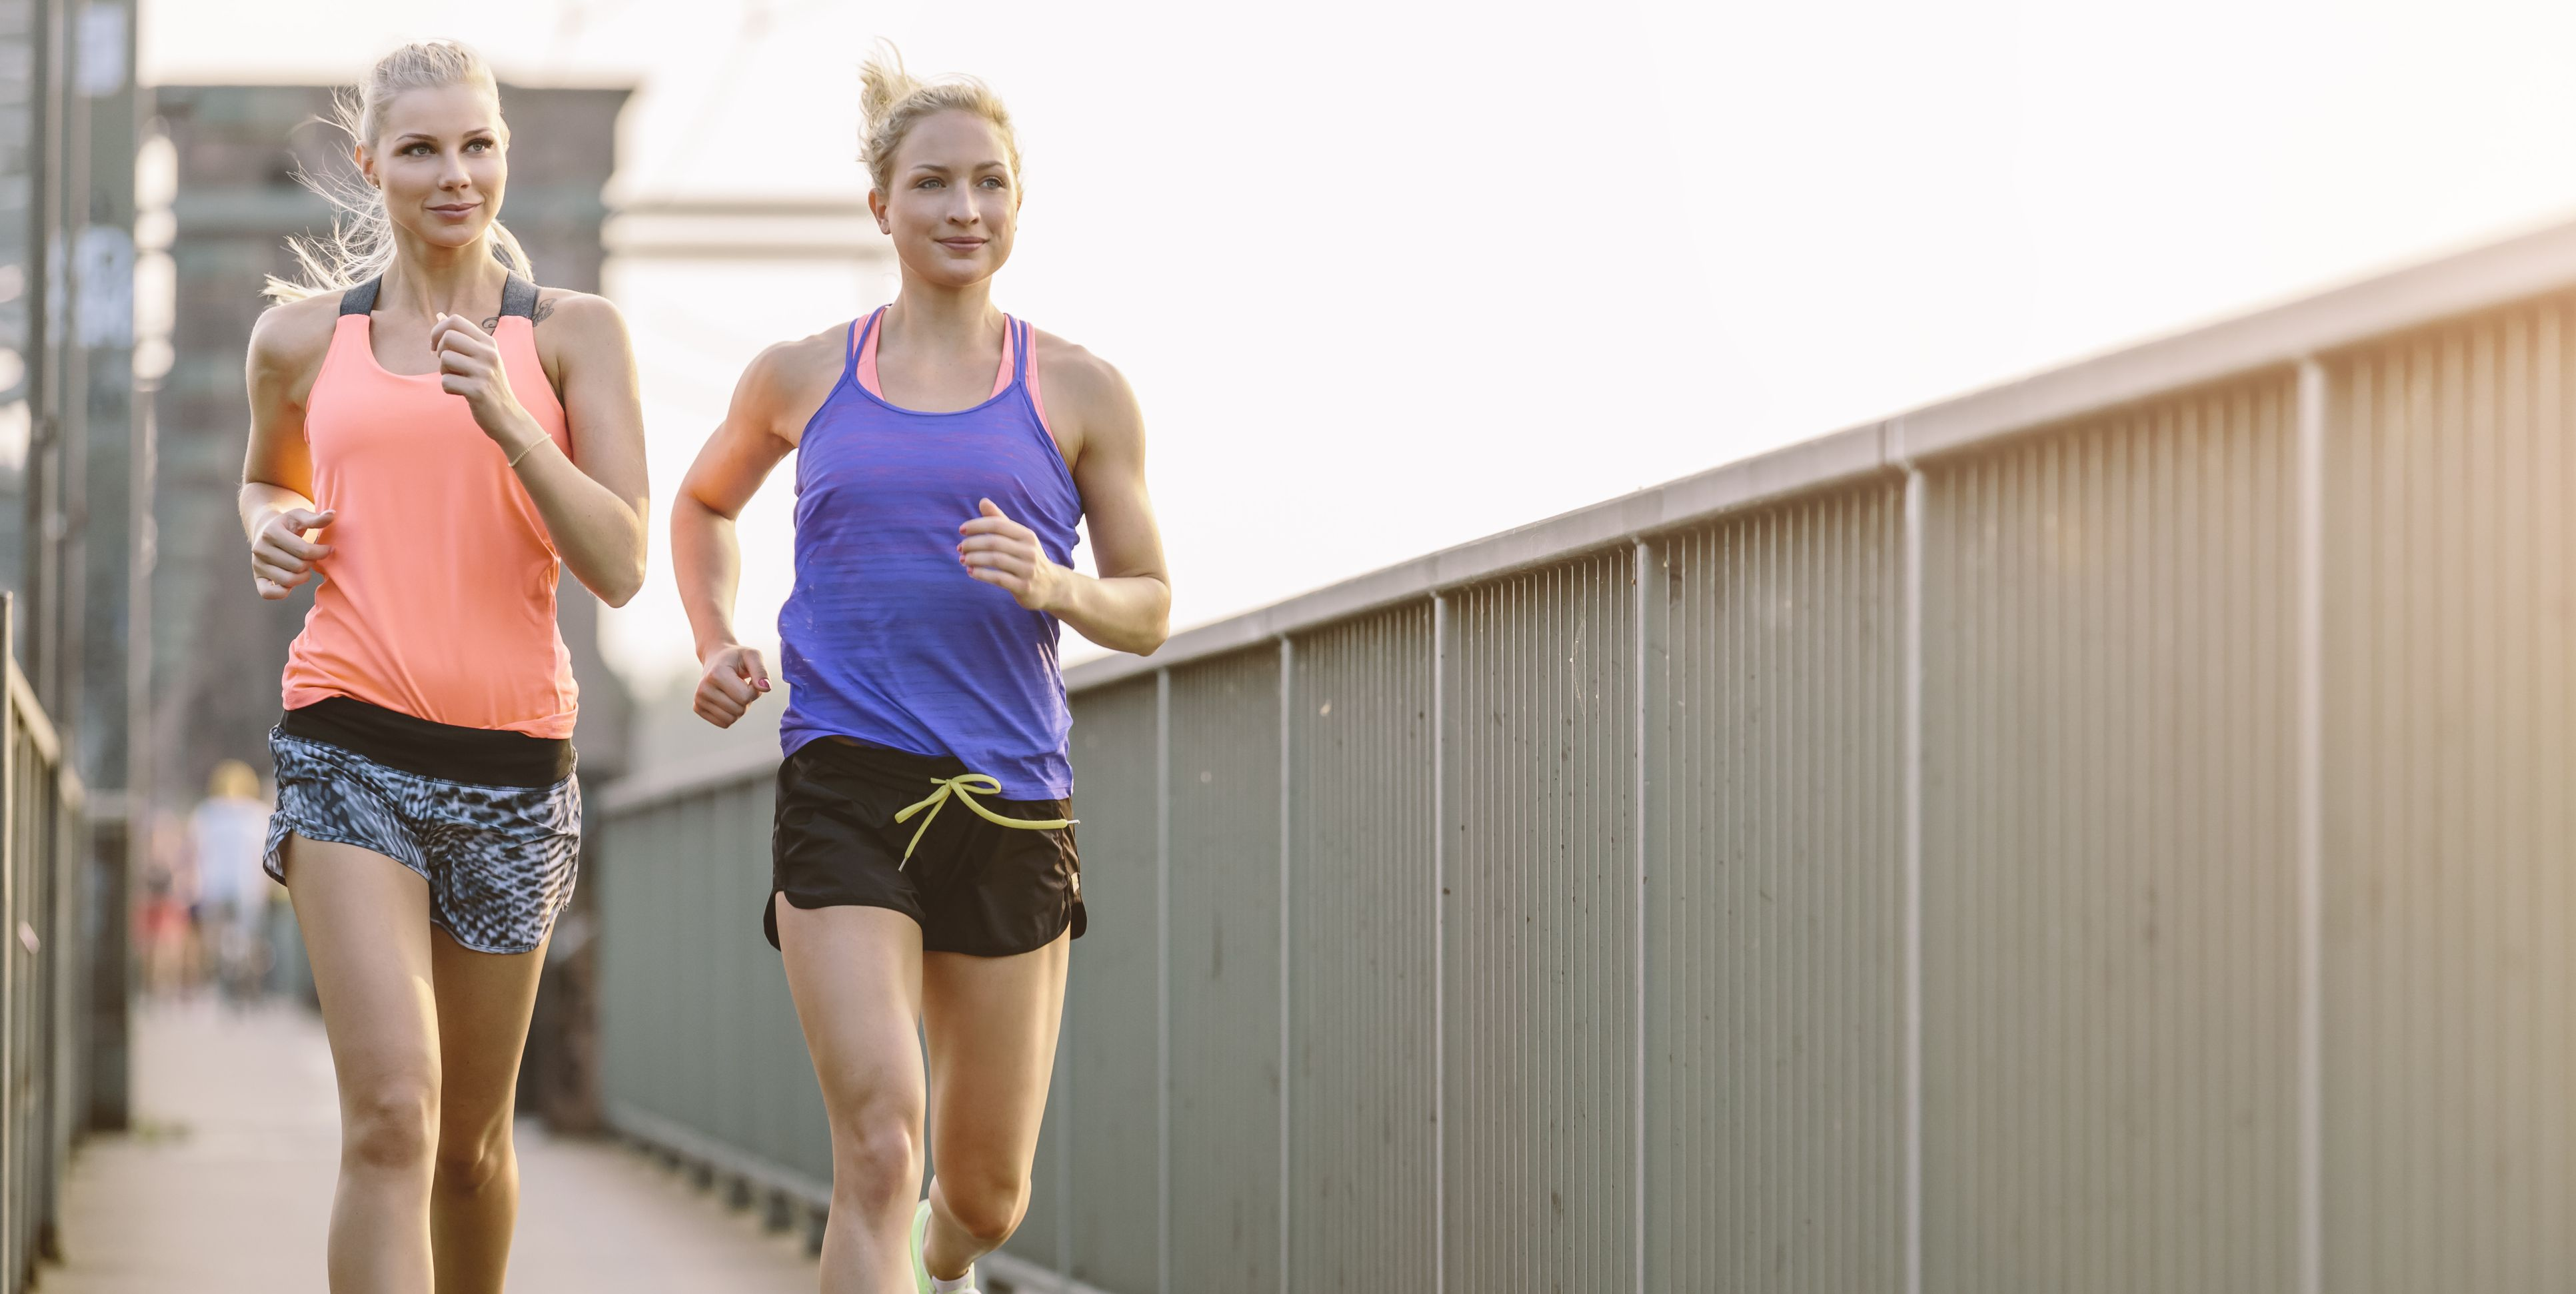 How to Stay Safe on the Run